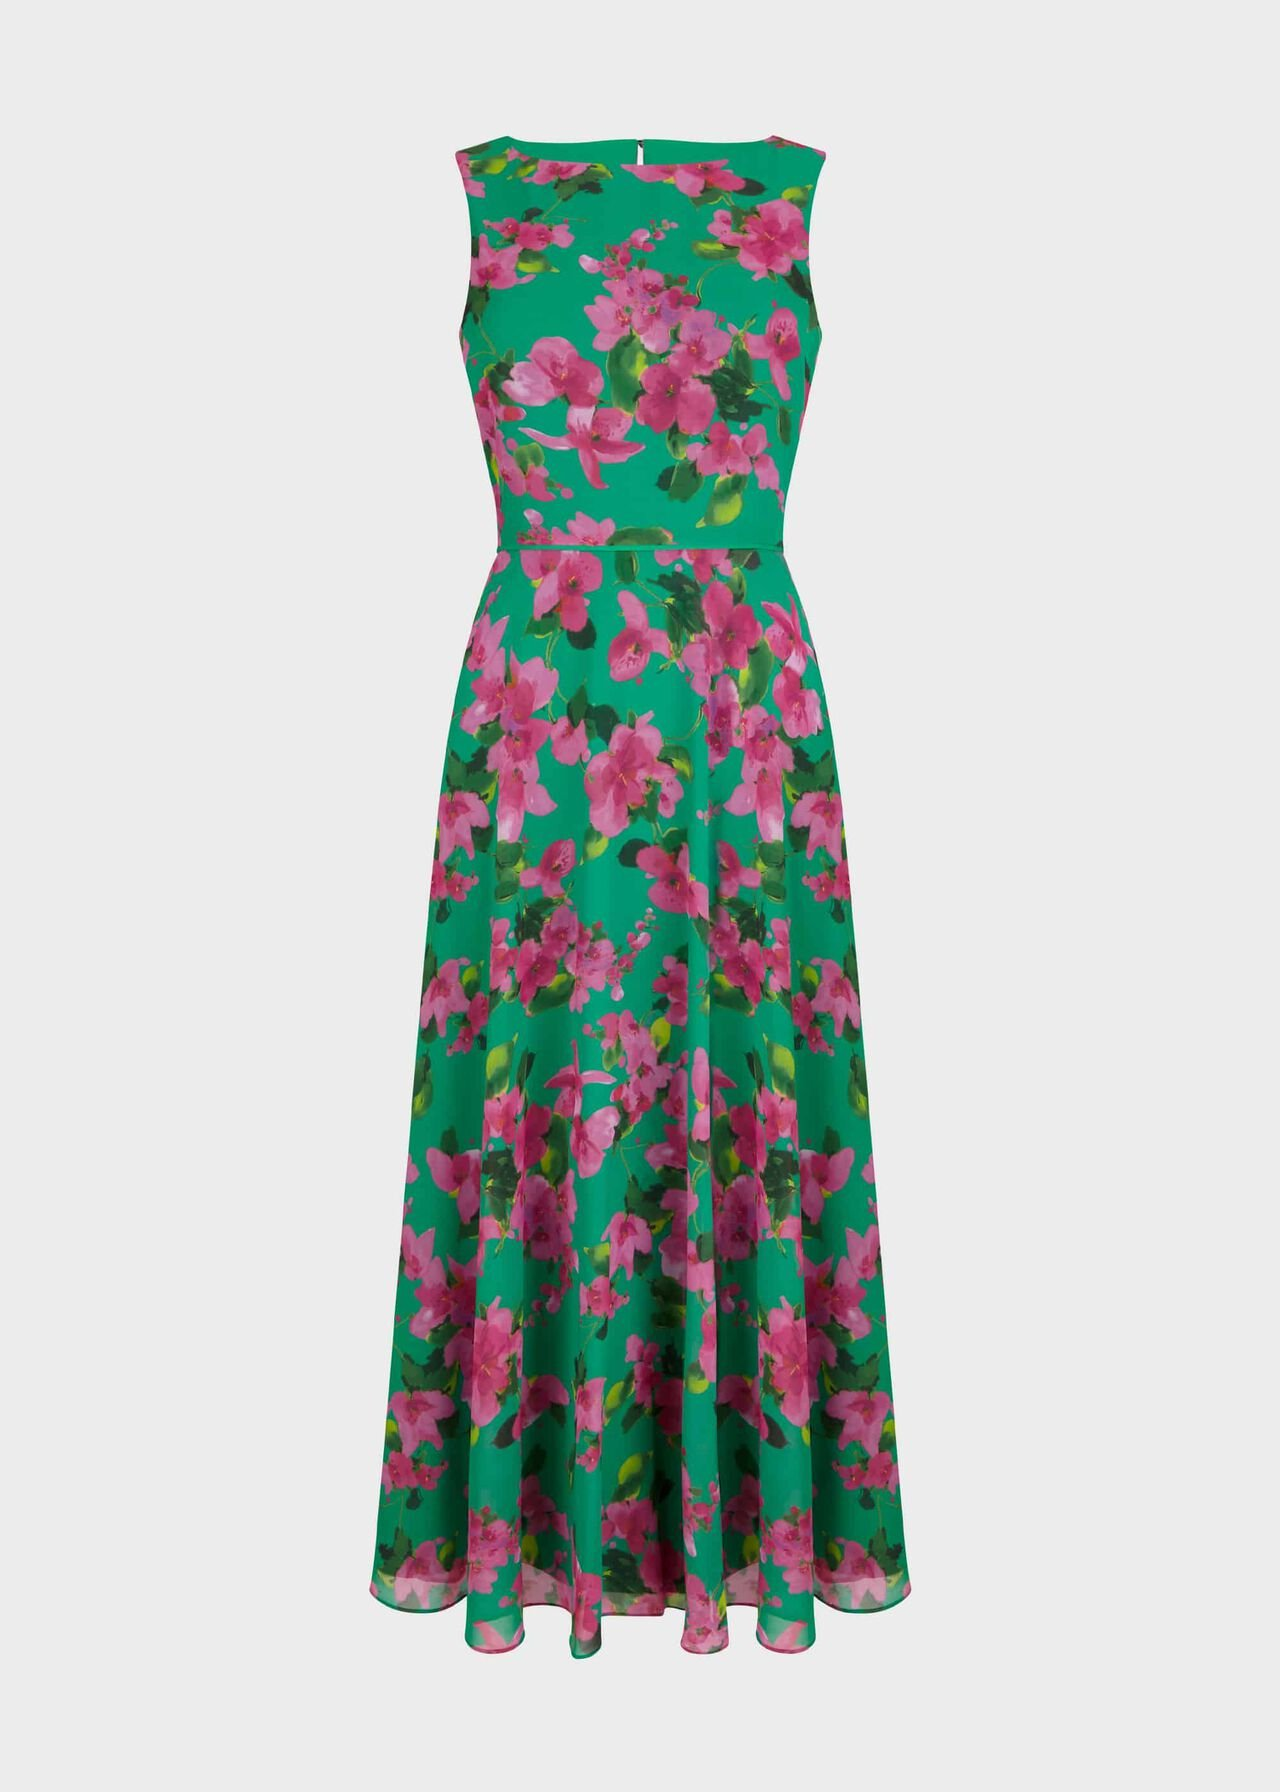 Carly Floral Midi Dress Fld Grn Fschia